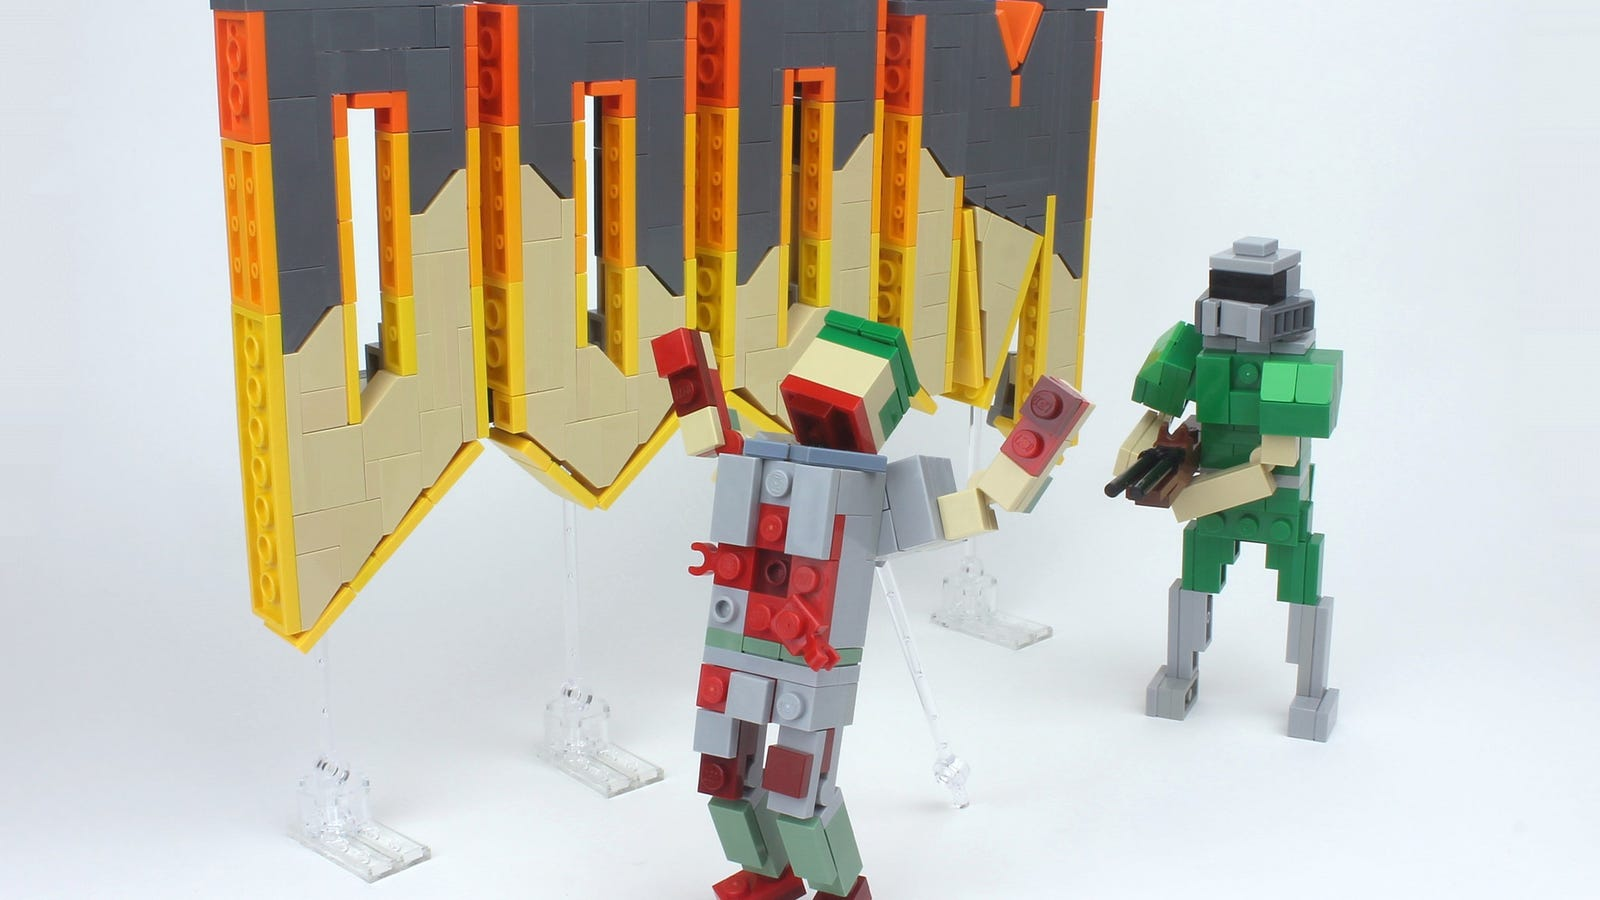 Doom looks perfectly pixelated in Lego form